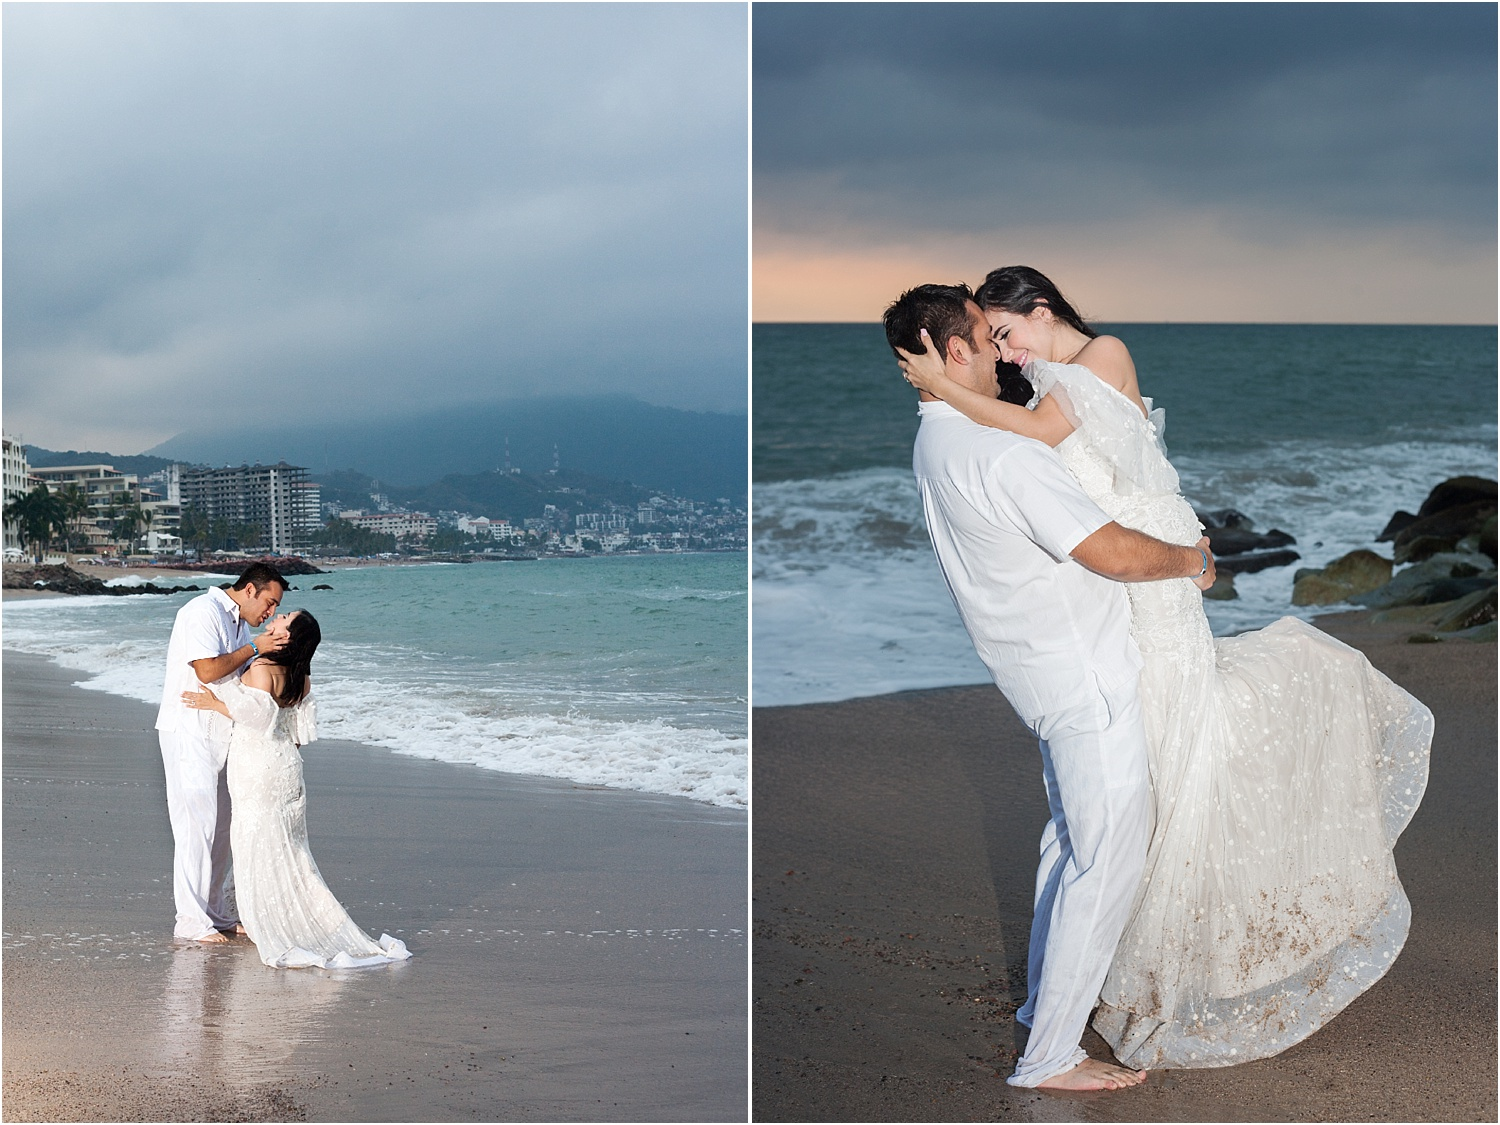 wedding portraits by the ocean - Using Flash for Beach Portraits